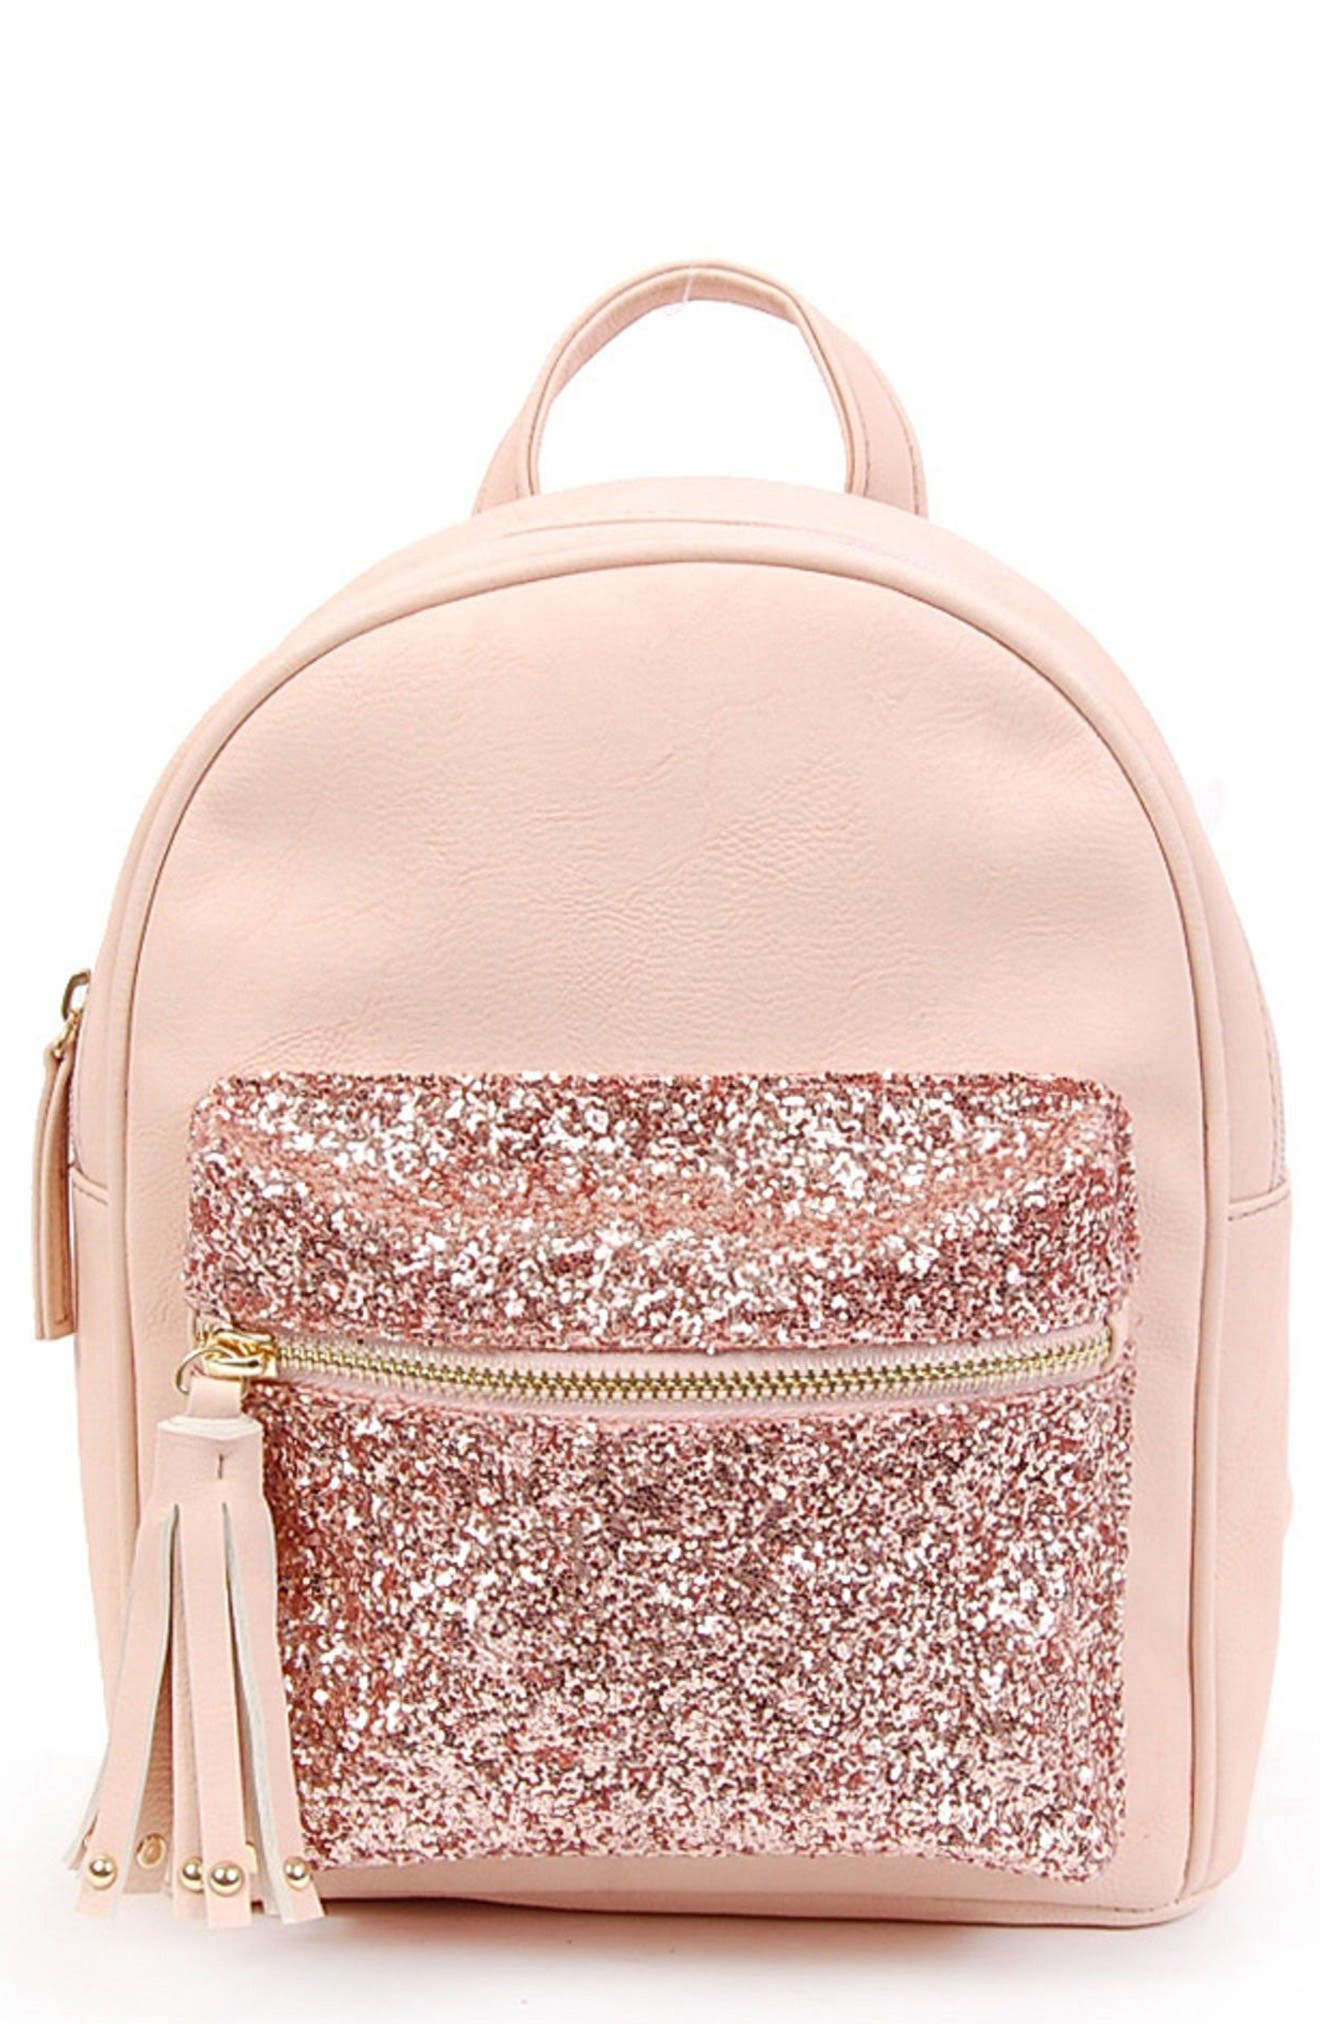 Glitter Pouch Mini Faux Leather Backpack,                             Main thumbnail 1, color,                             650